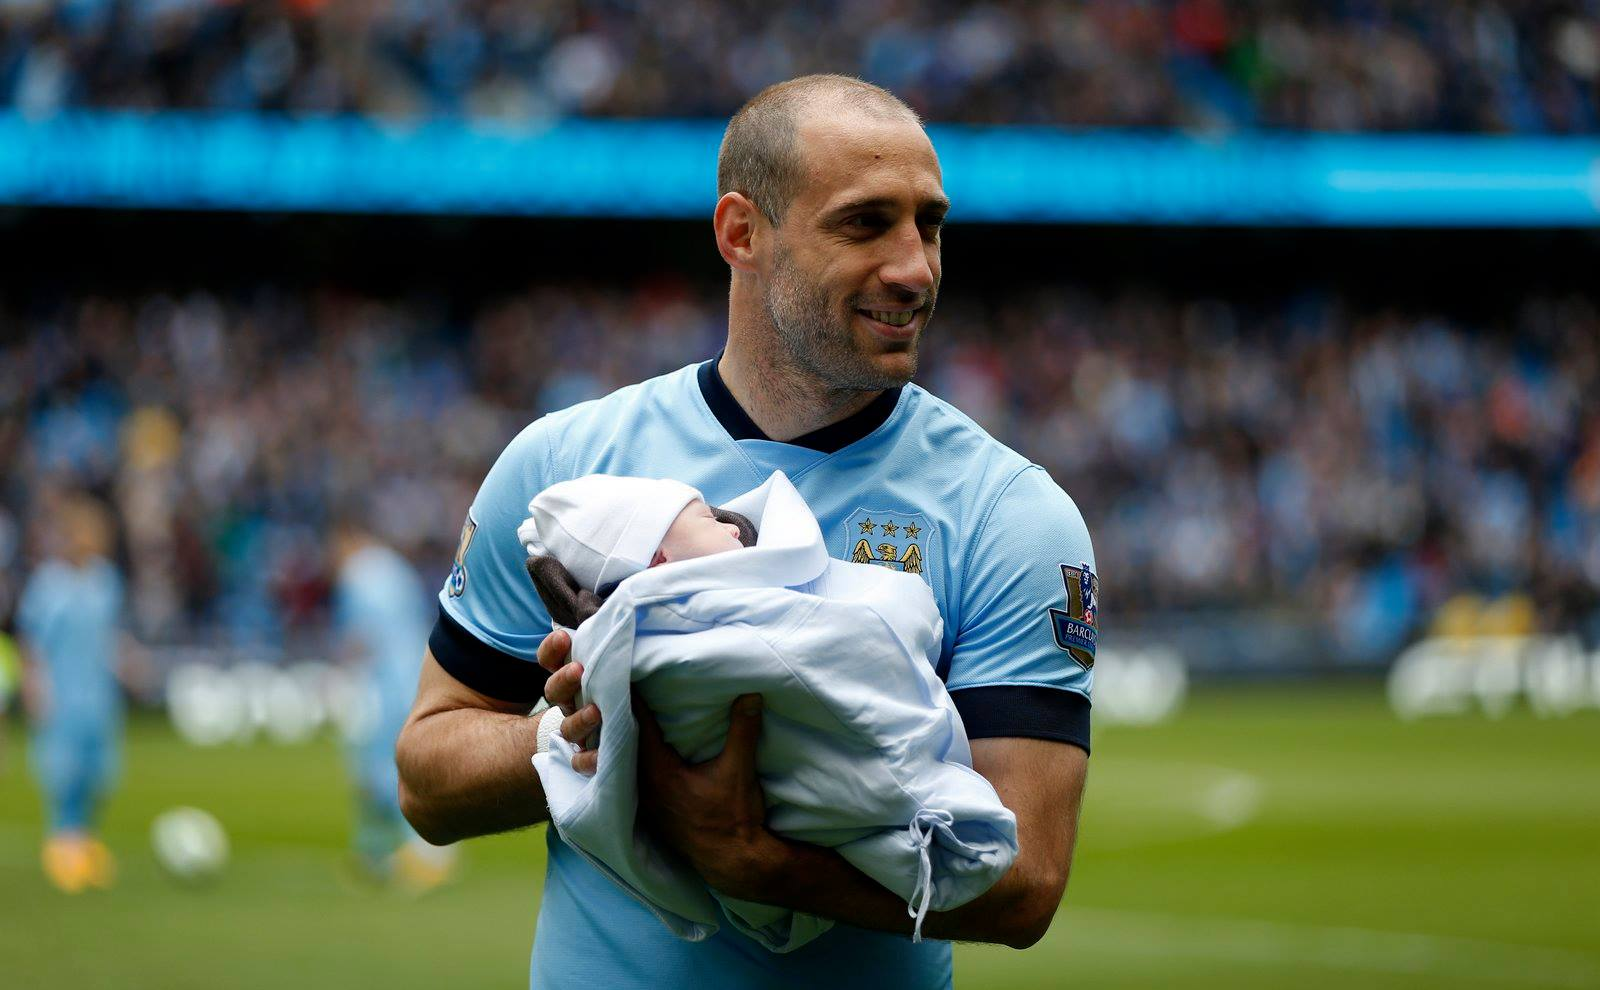 New arrival - Zaba has to stay at the Etihad next season, along with newborn son Asier. Courtesy@MCFC